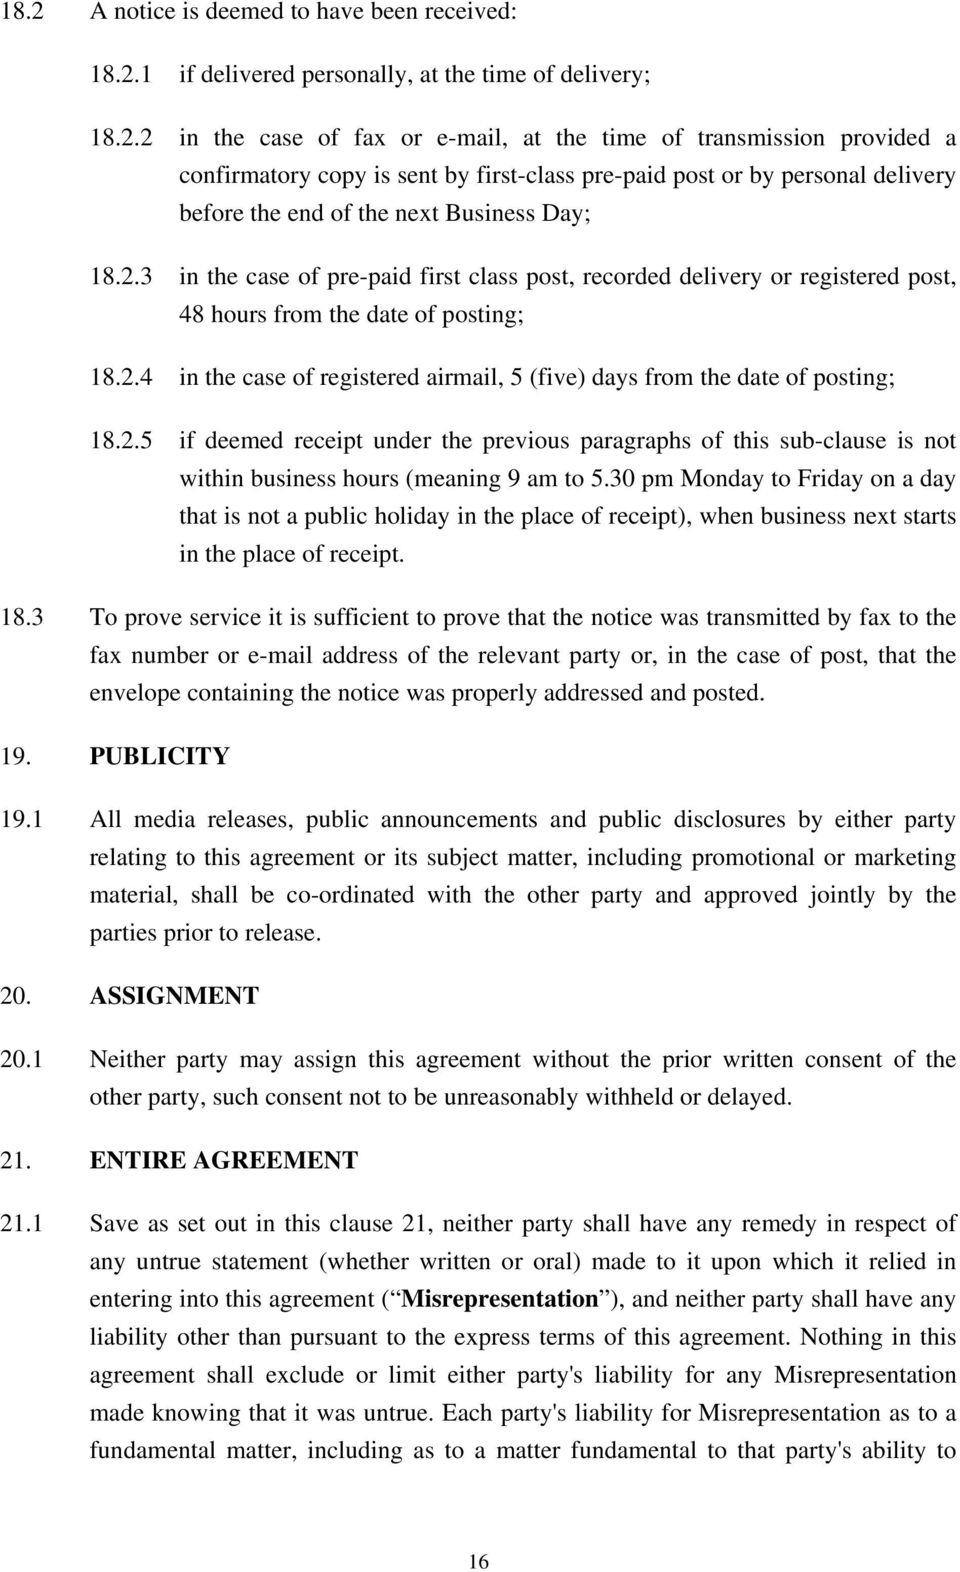 2.5 if deemed receipt under the previous paragraphs of this sub-clause is not within business hours (meaning 9 am to 5.